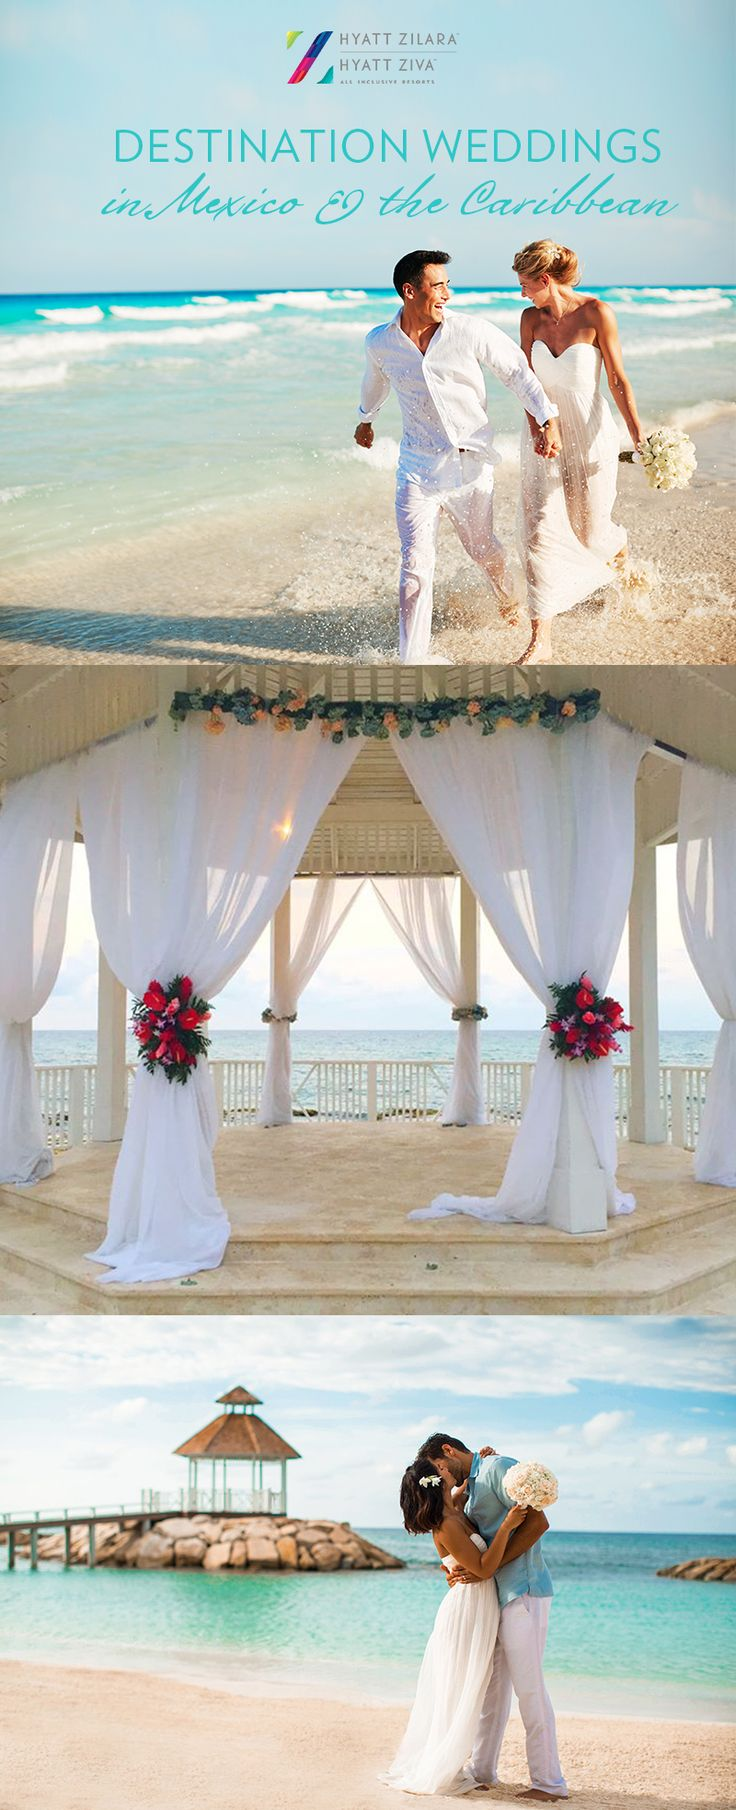 Plan your dream destination wedding in paradise with the one you love hyatt all